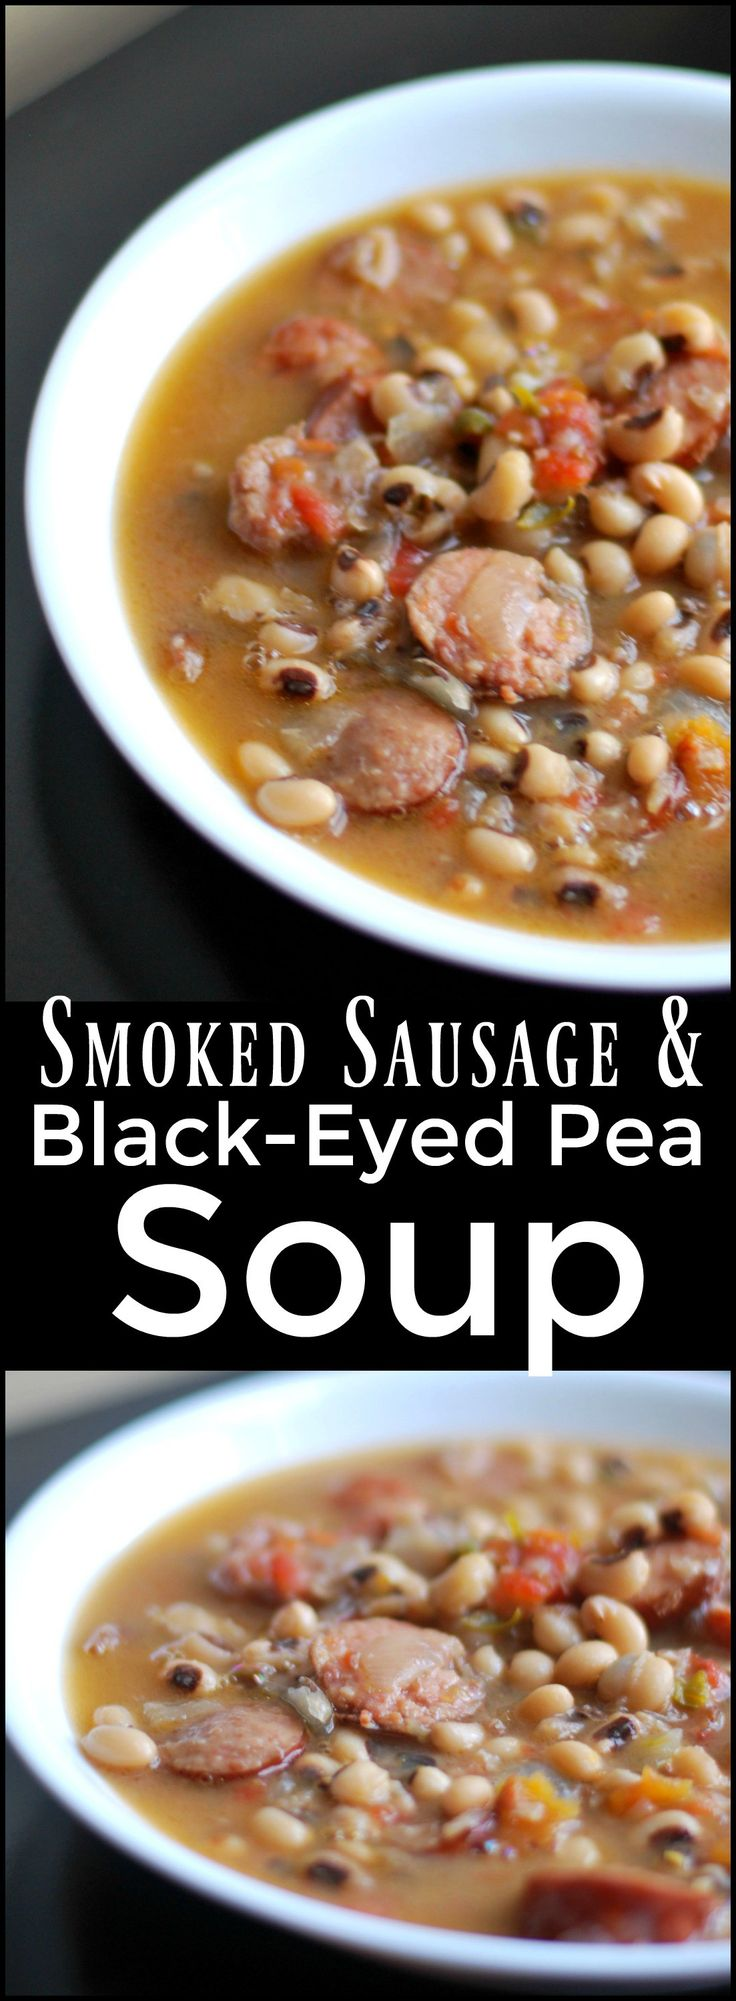 Smoked Sausage & Black-Eyed Pea Soup | Aunt Bee's Recipes